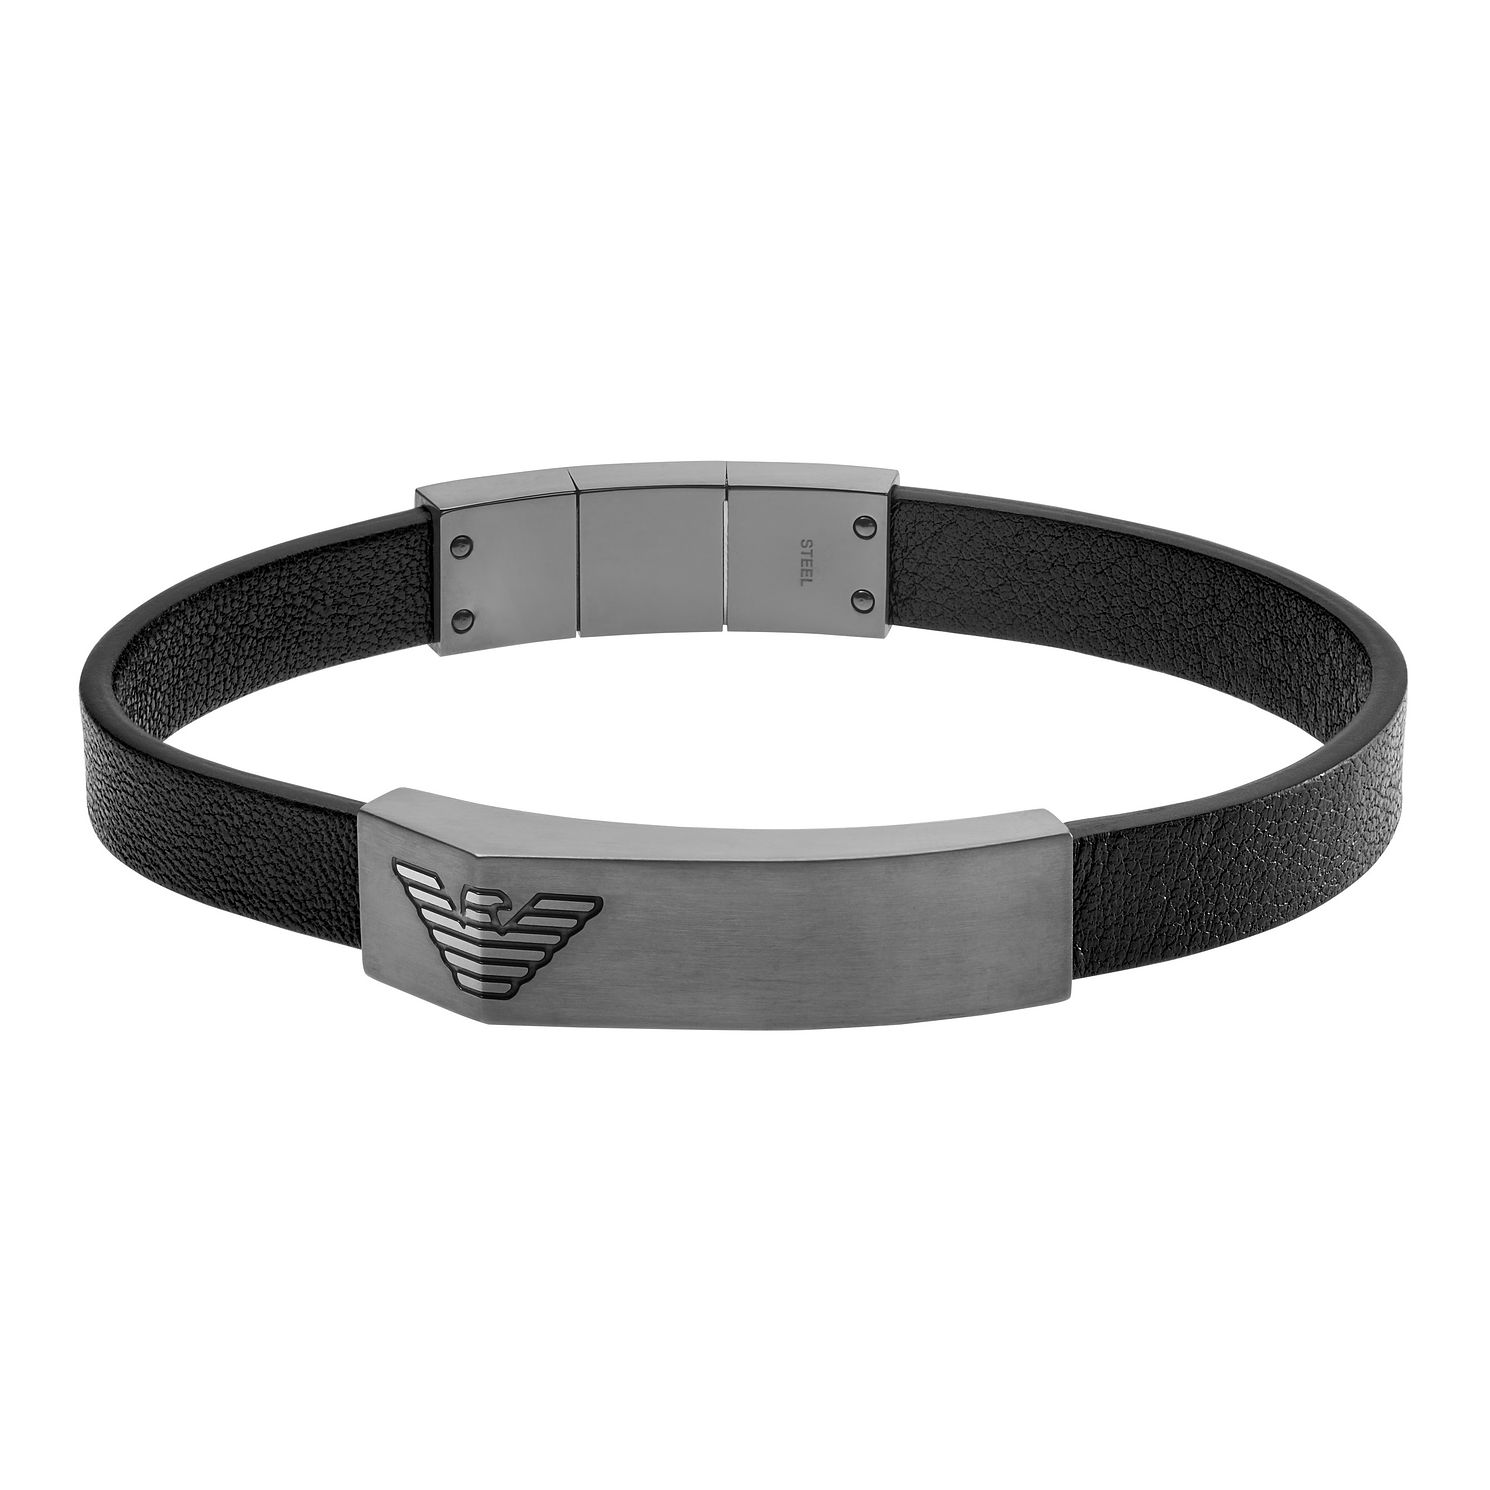 Emporio Armani Men's Black Leather Bracelet - Product number 2358395